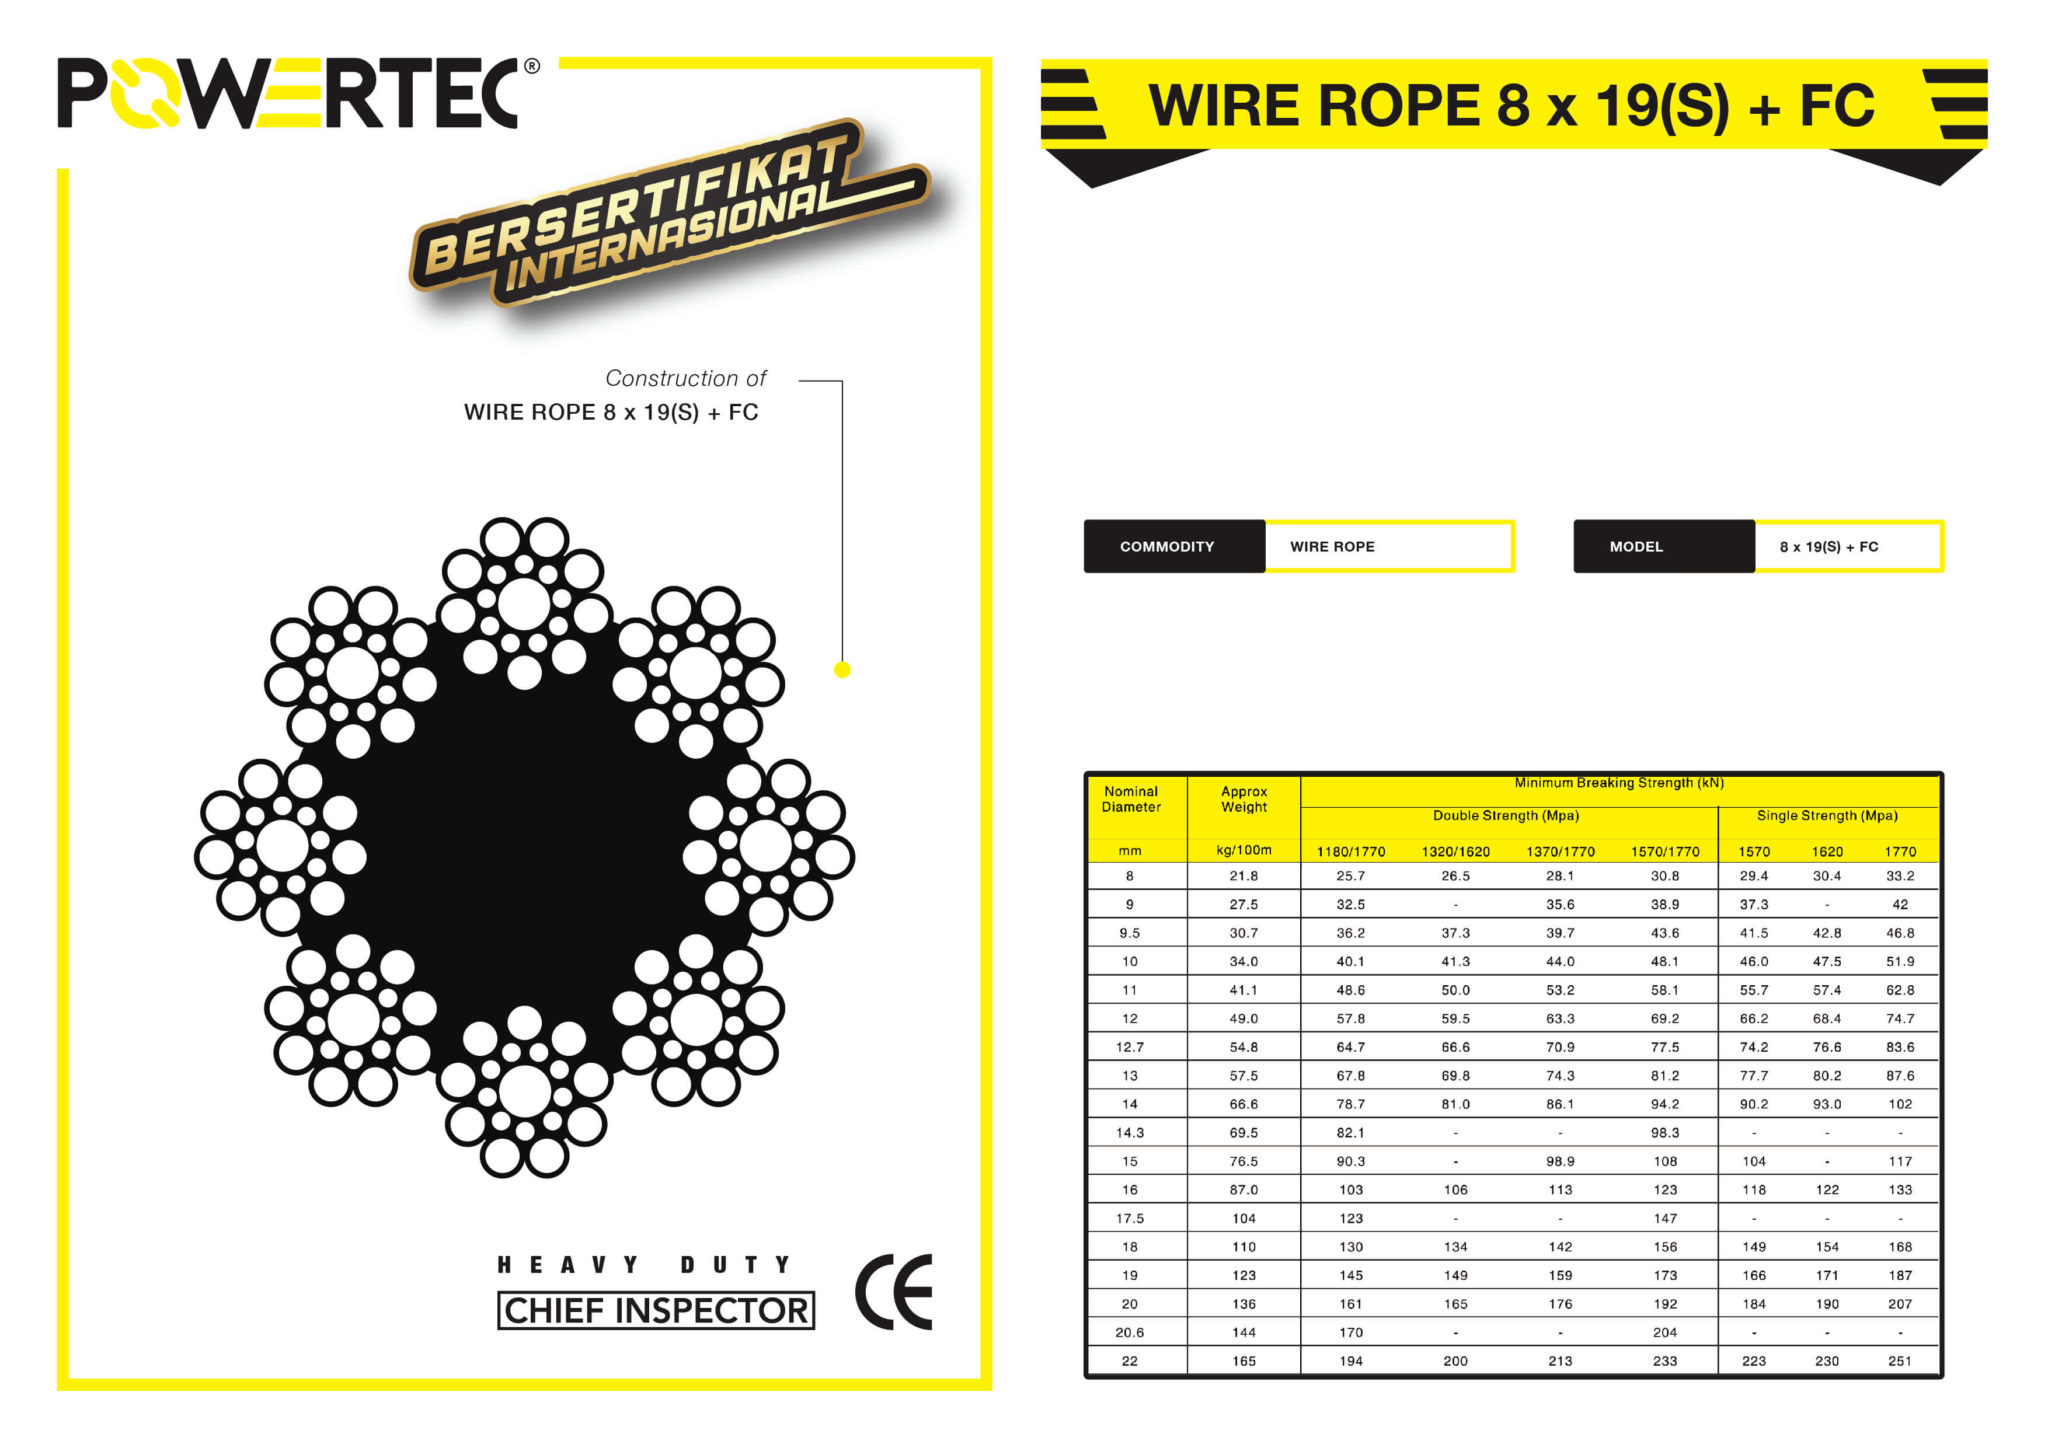 POWERTEC WIRE ROPE 8 x 19(S) + FC BROCHURE